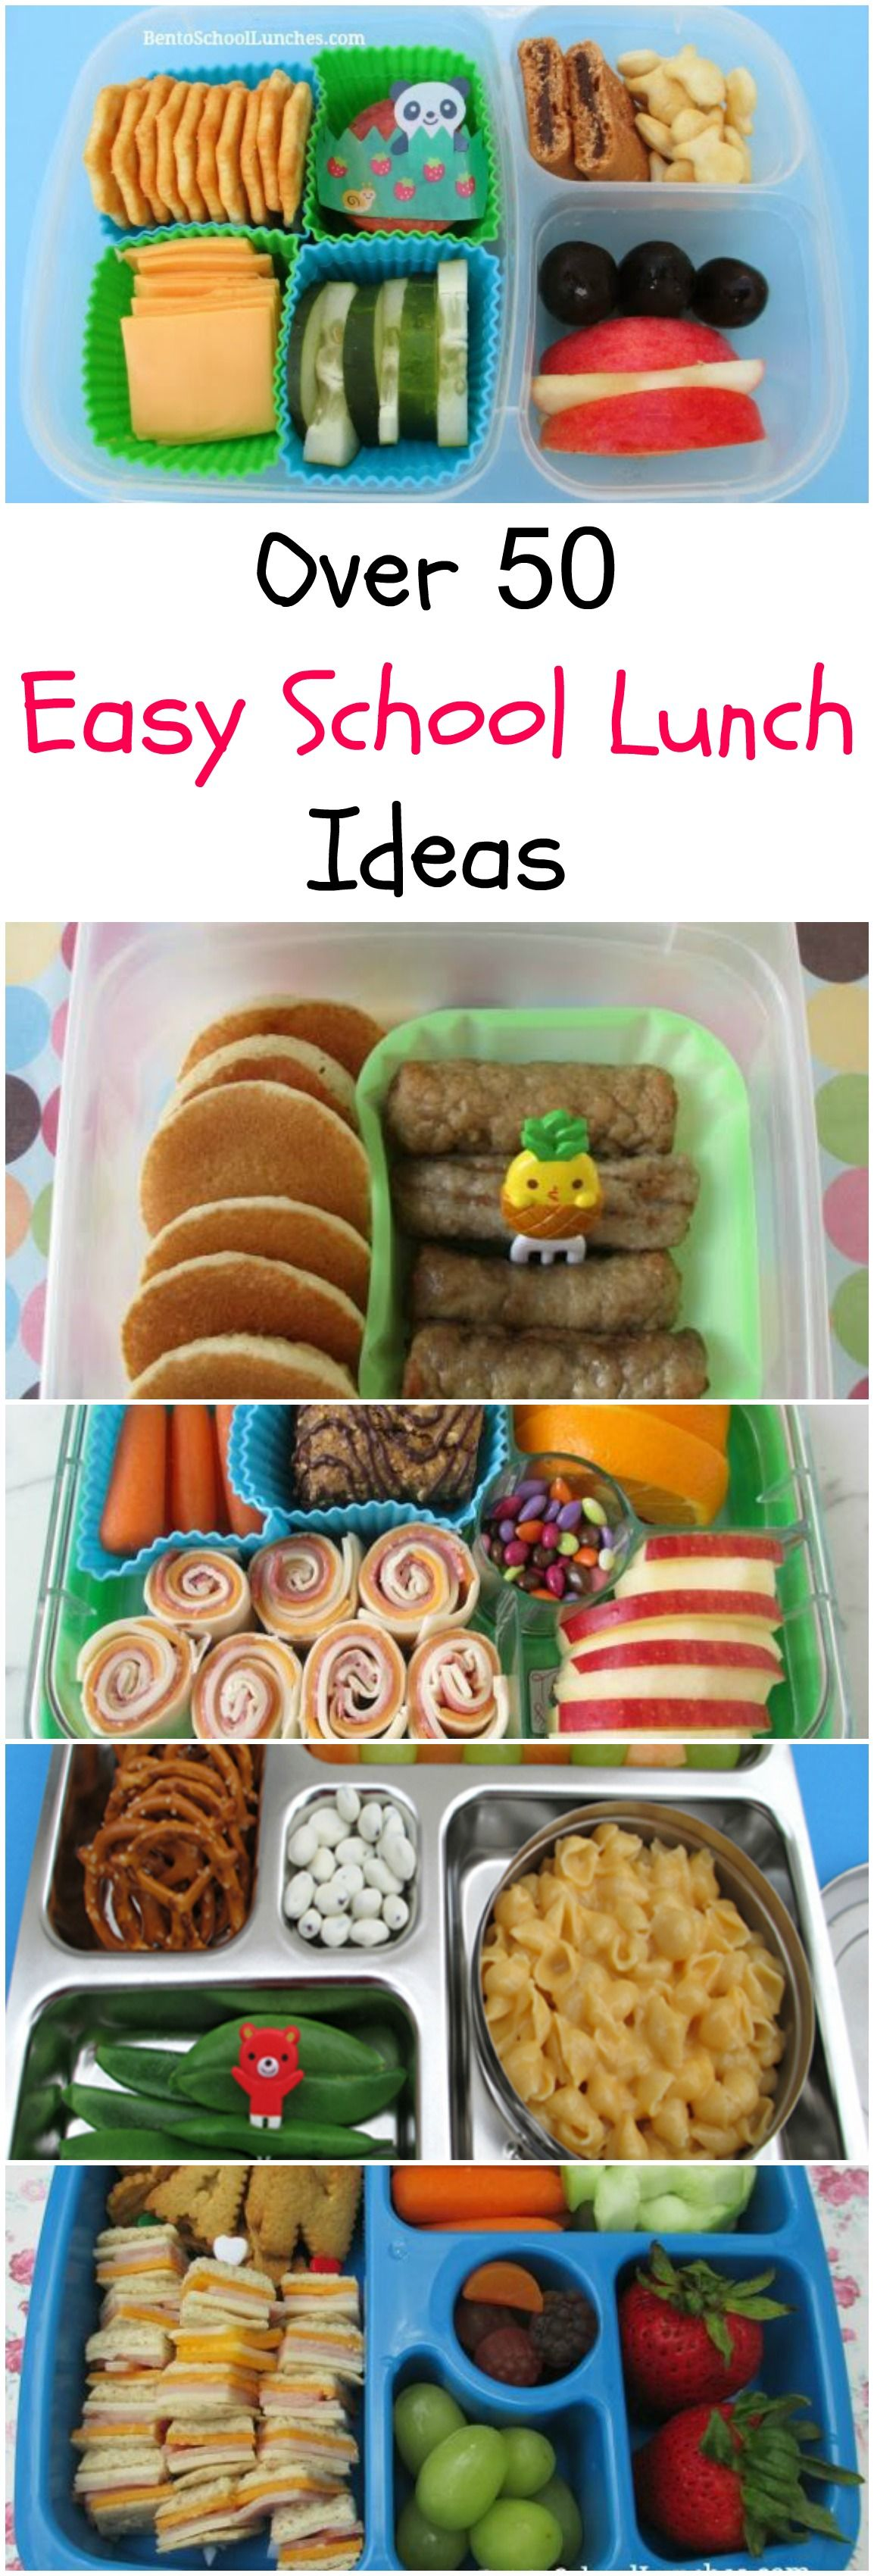 Easy and Fun School Lunch Ideas from Pinwheels, Roll-Ups, DIY Lunchables, Leftovers, Kebabs. #schoollunchideasforkids